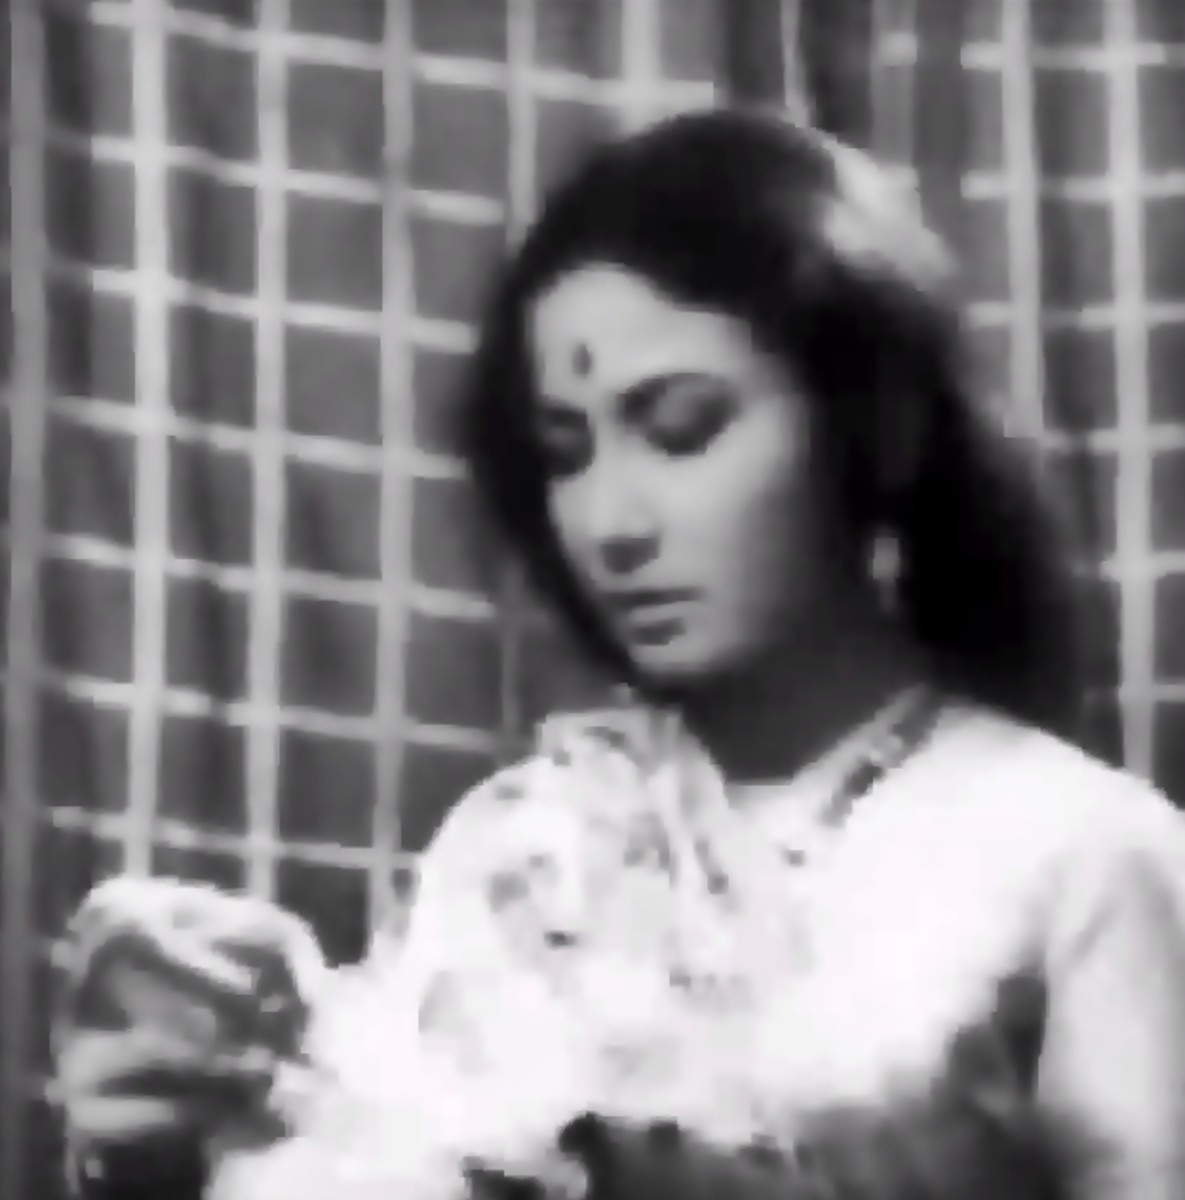 Meena Kumari in Jyoti kalash chhalake...: A great classical number in Raag Bhupali by Lata Mangeshkar